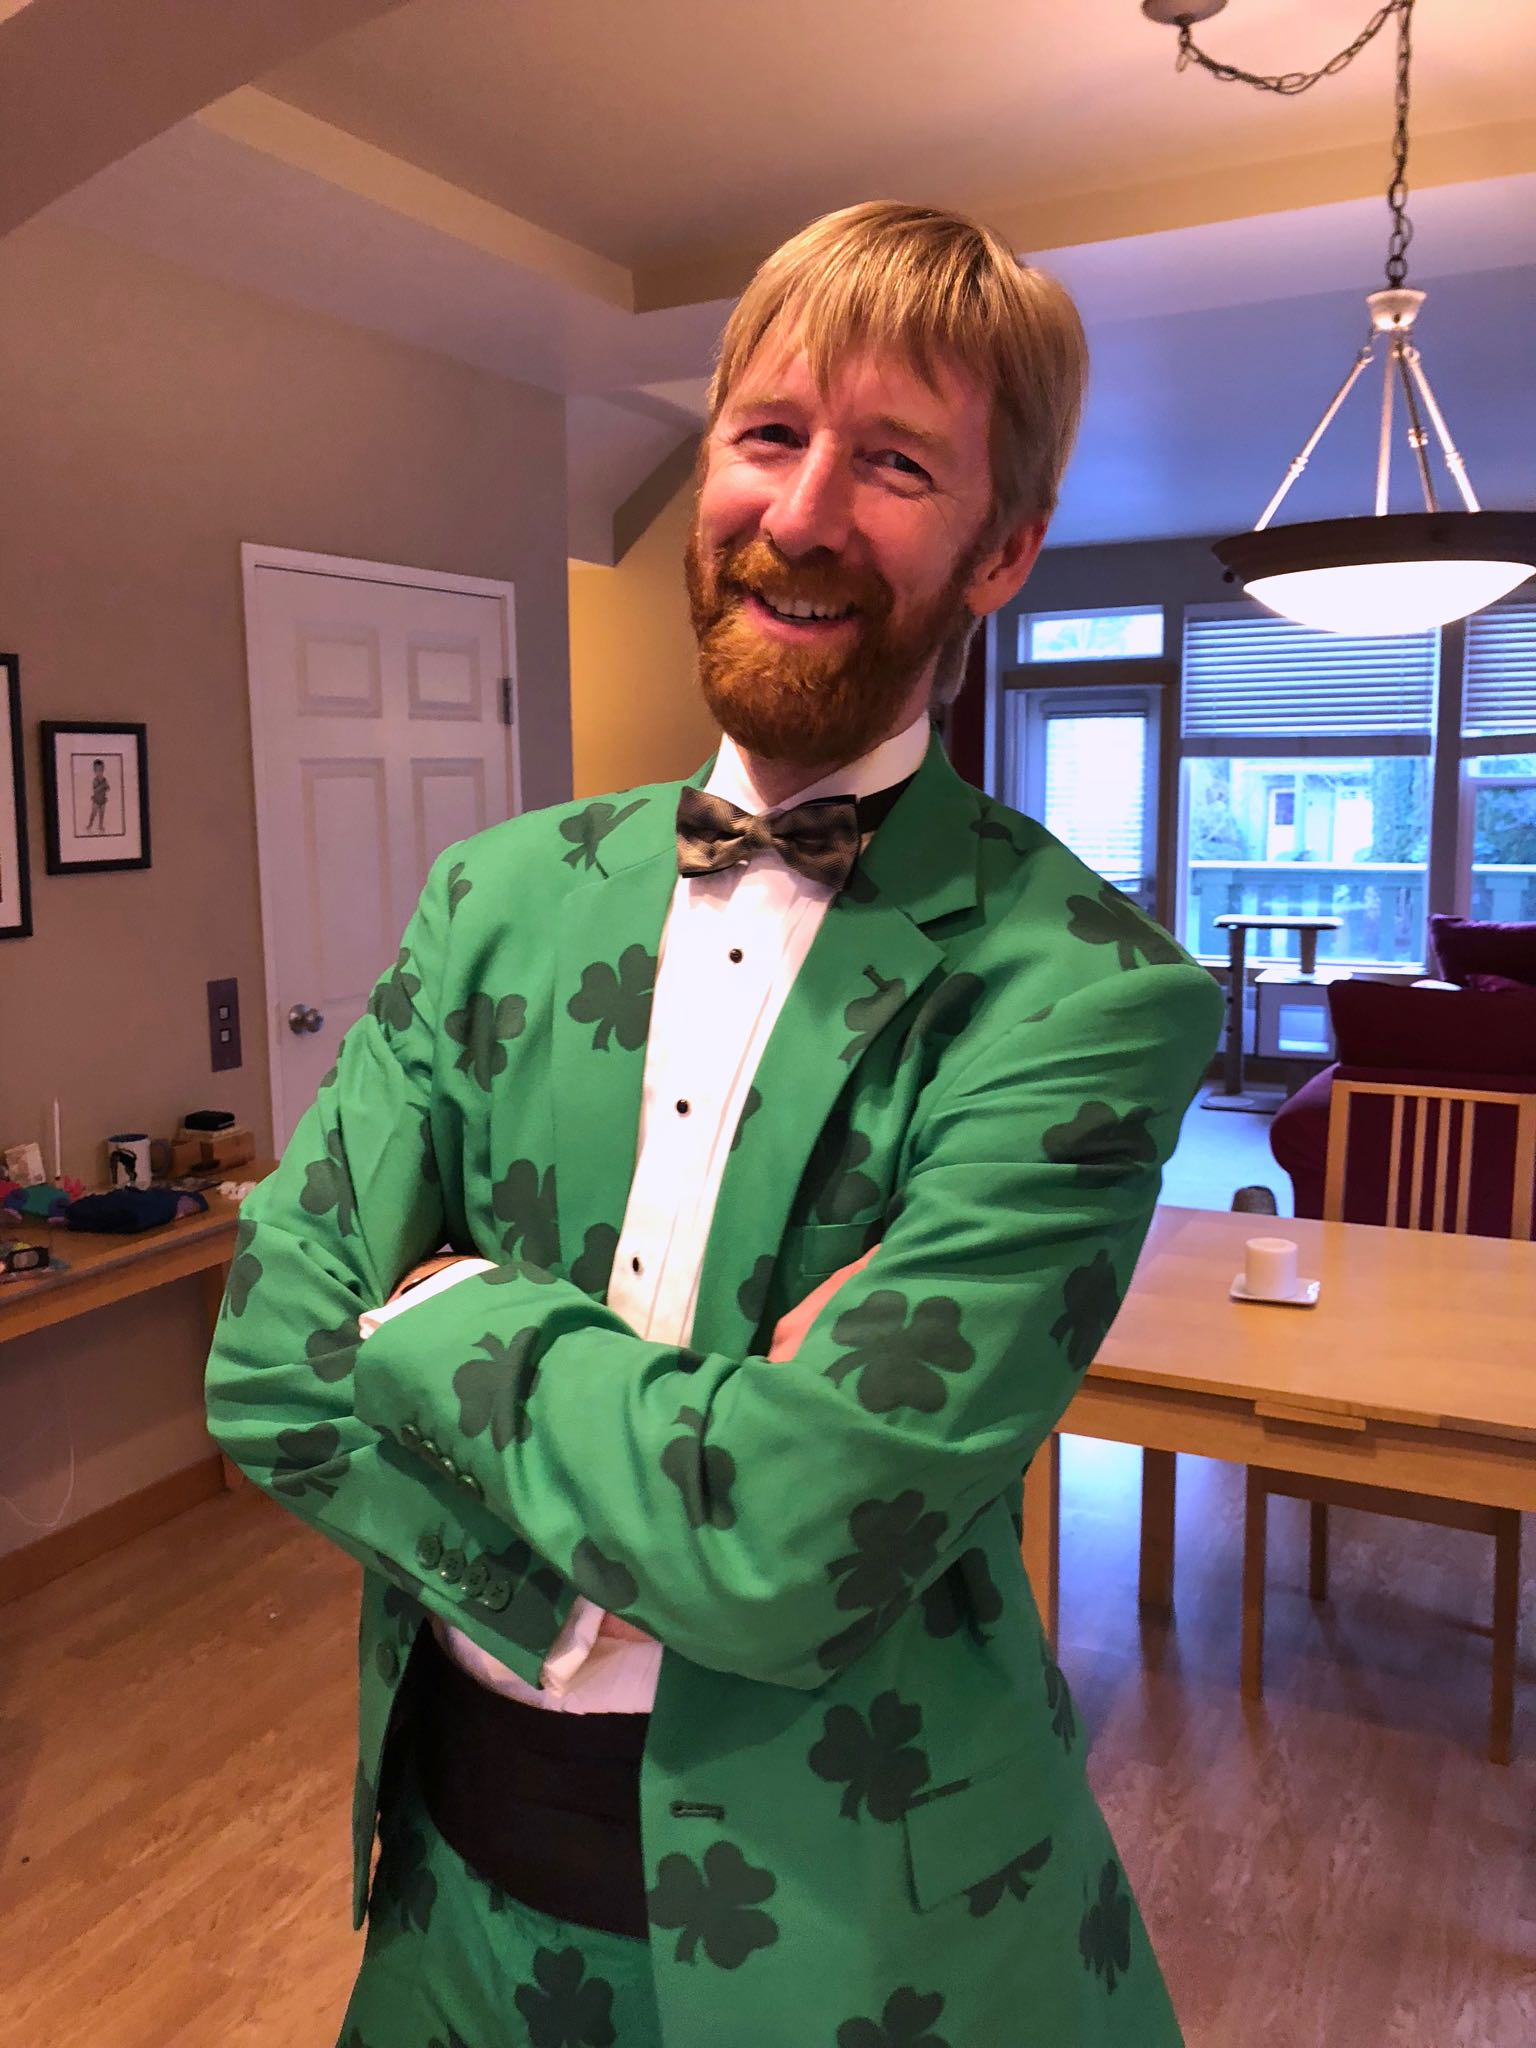 Tom in green tuxedo with green shamrocks